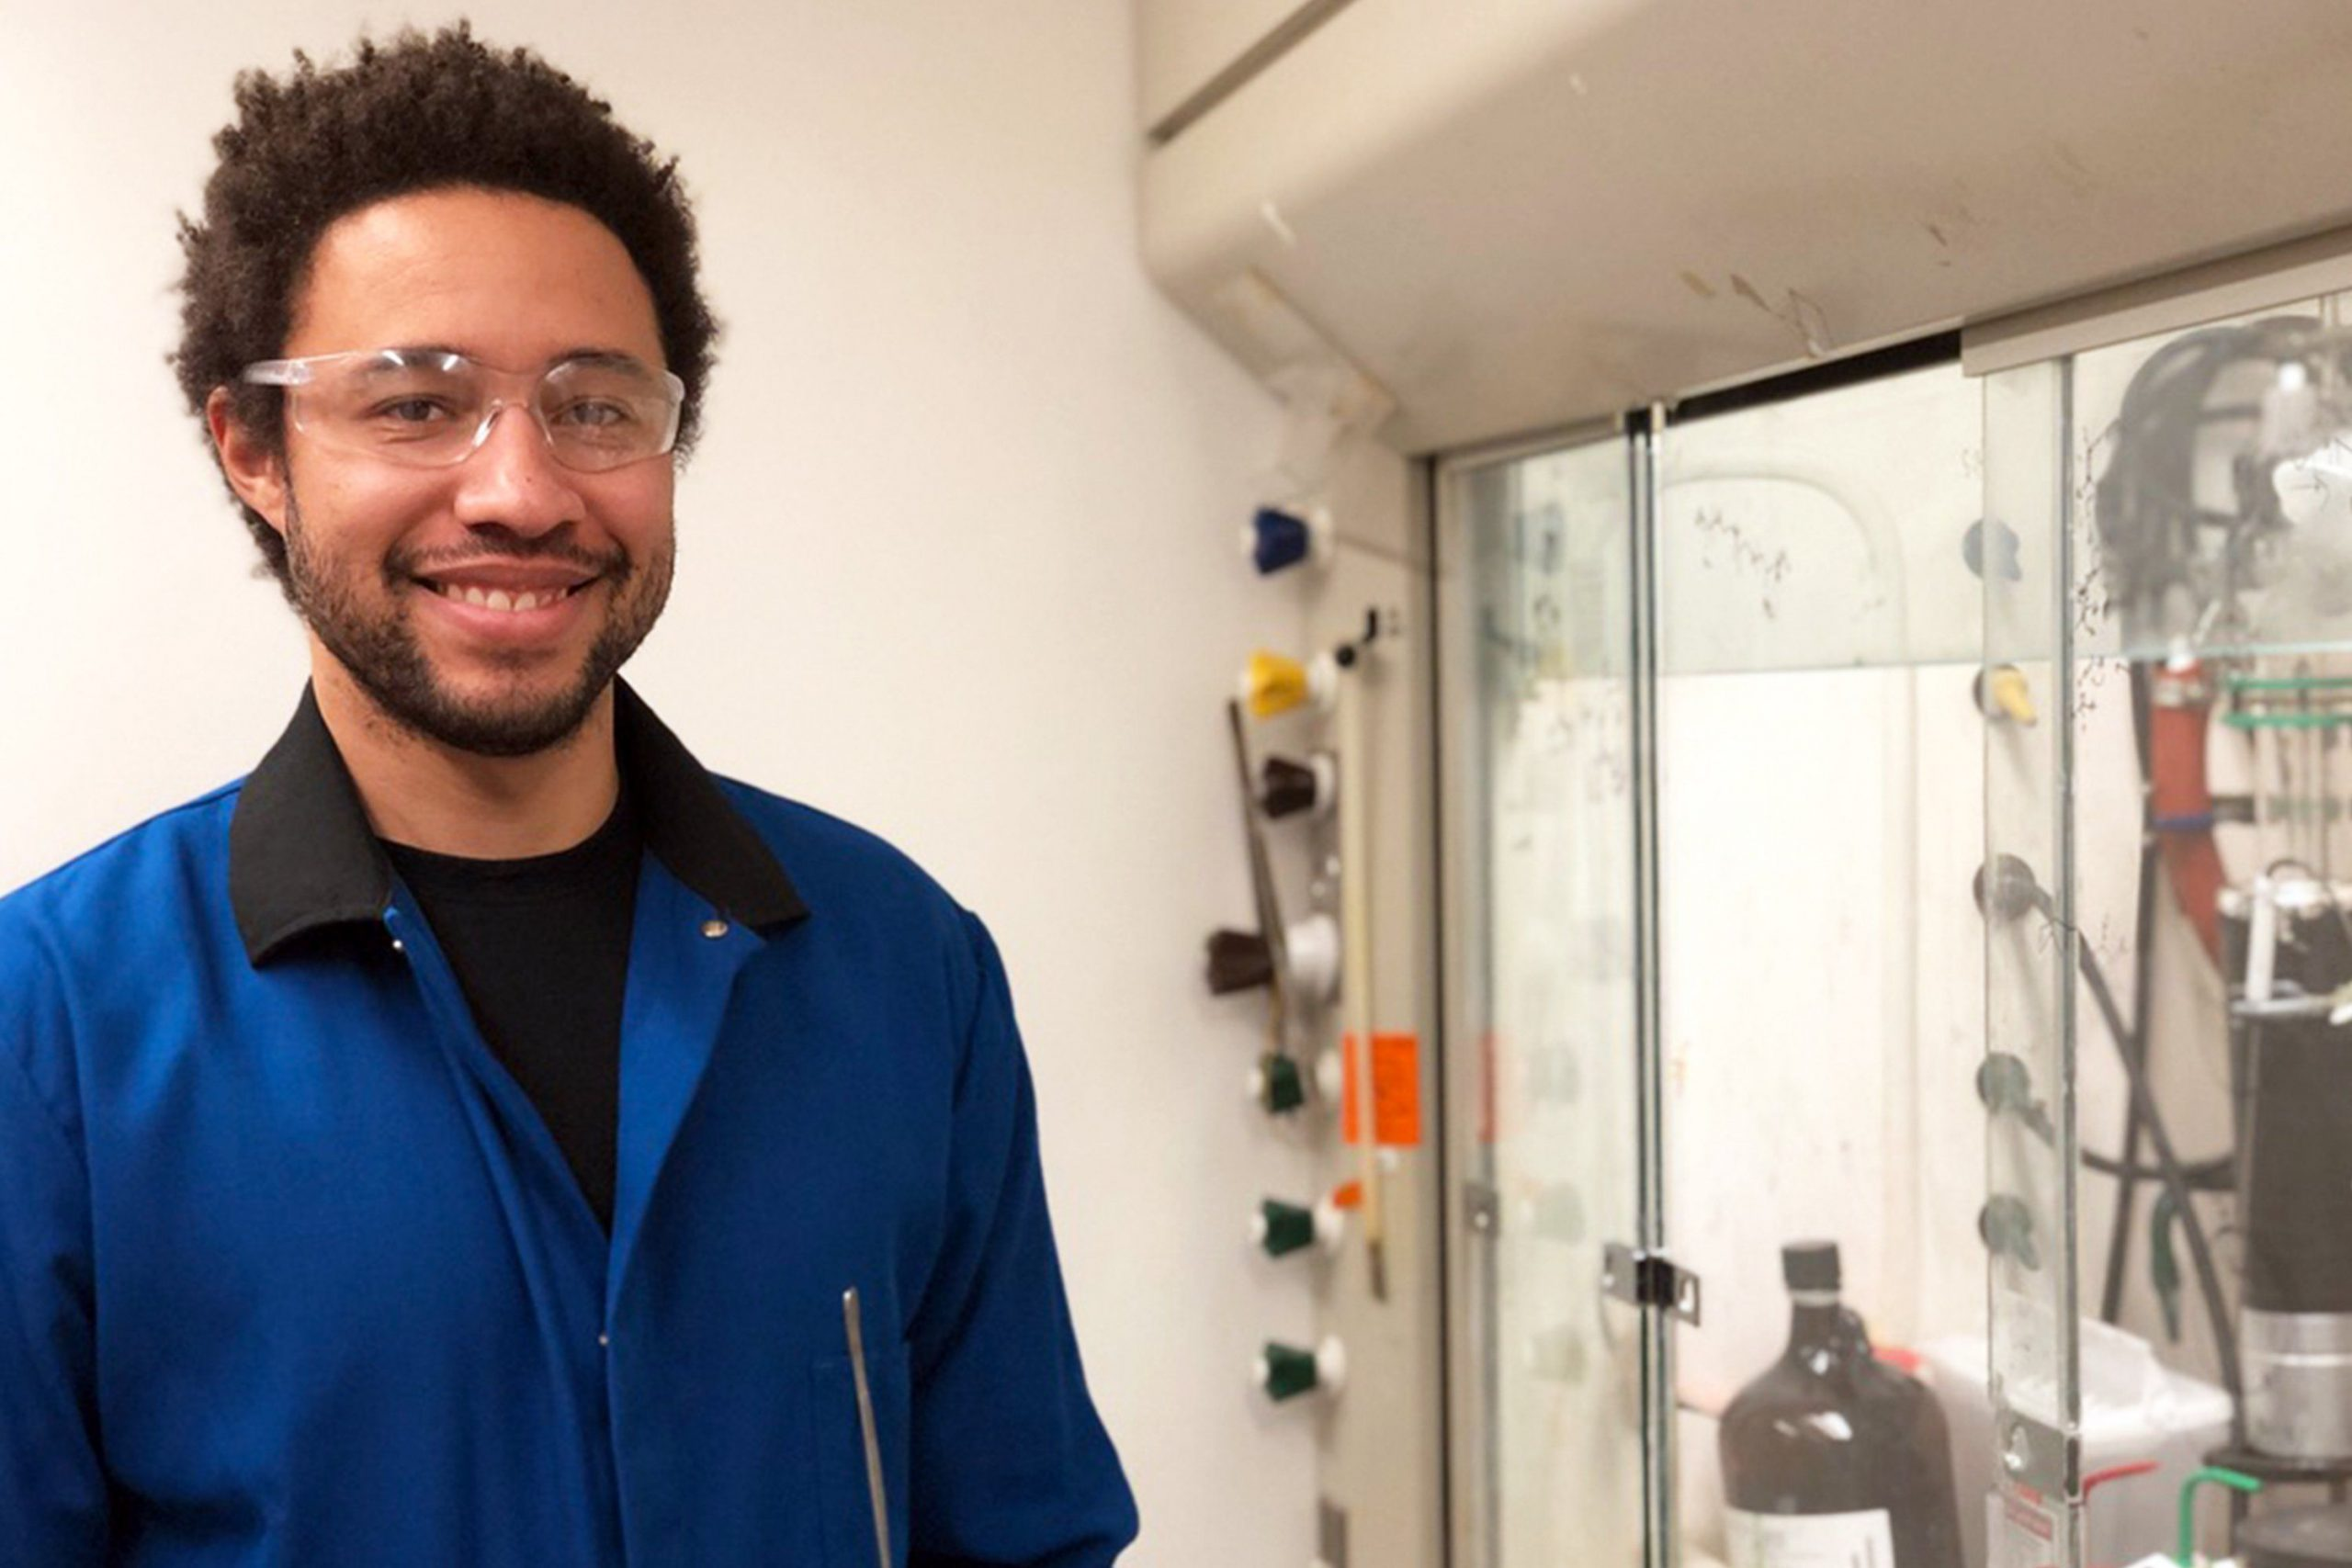 Image of postdoc Ben McDonald in front of a workstation in a lab.